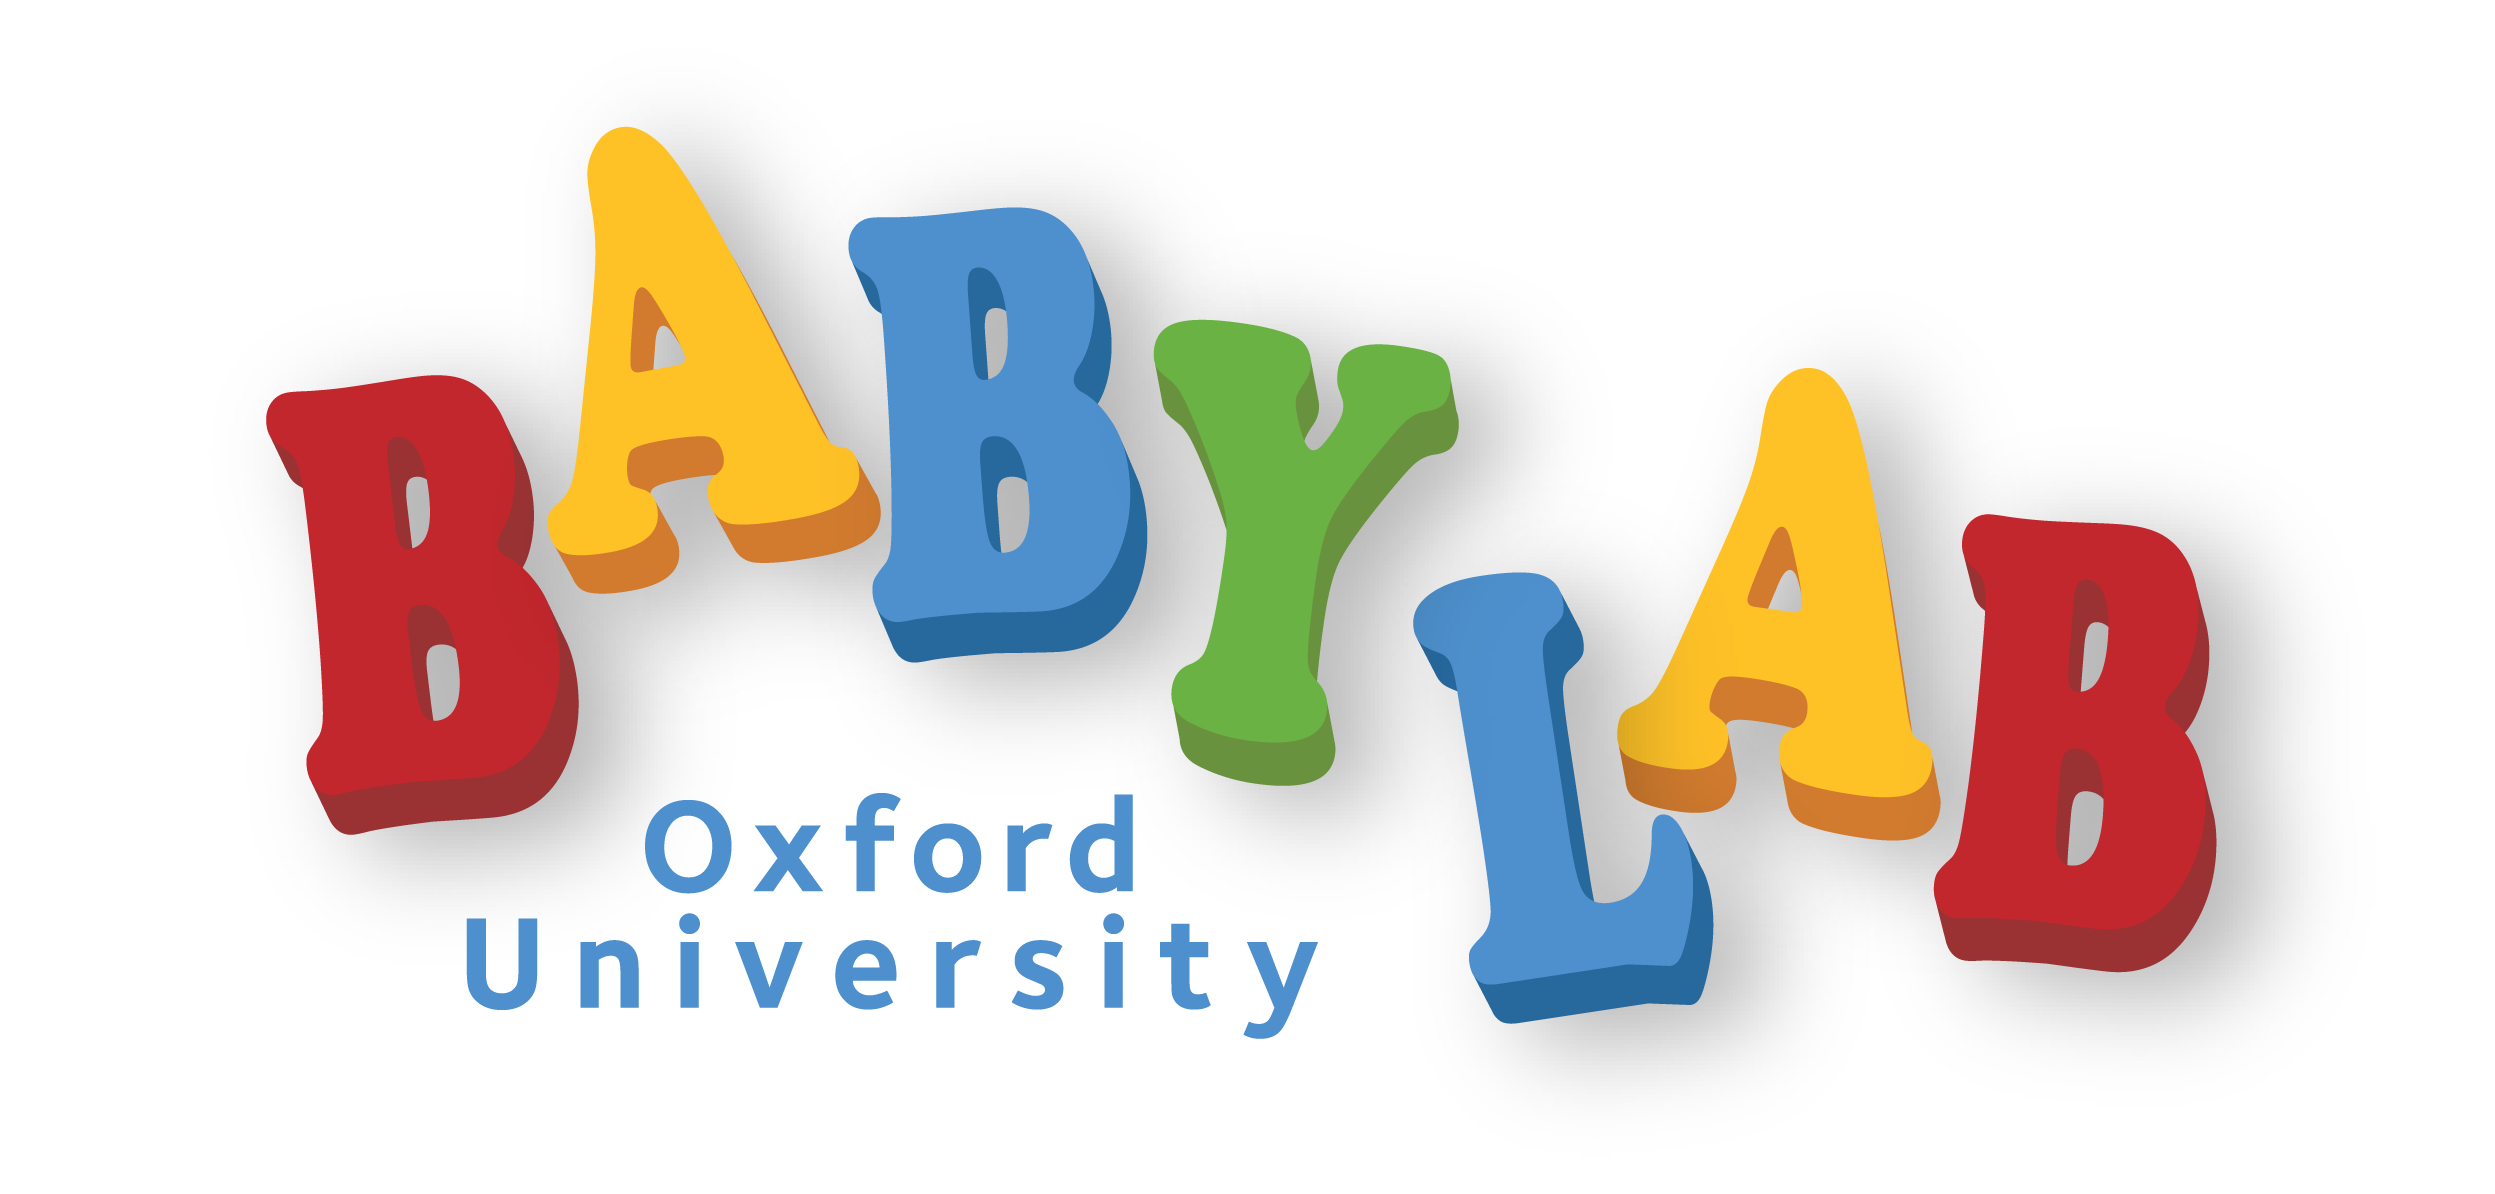 Oxford BabyLab